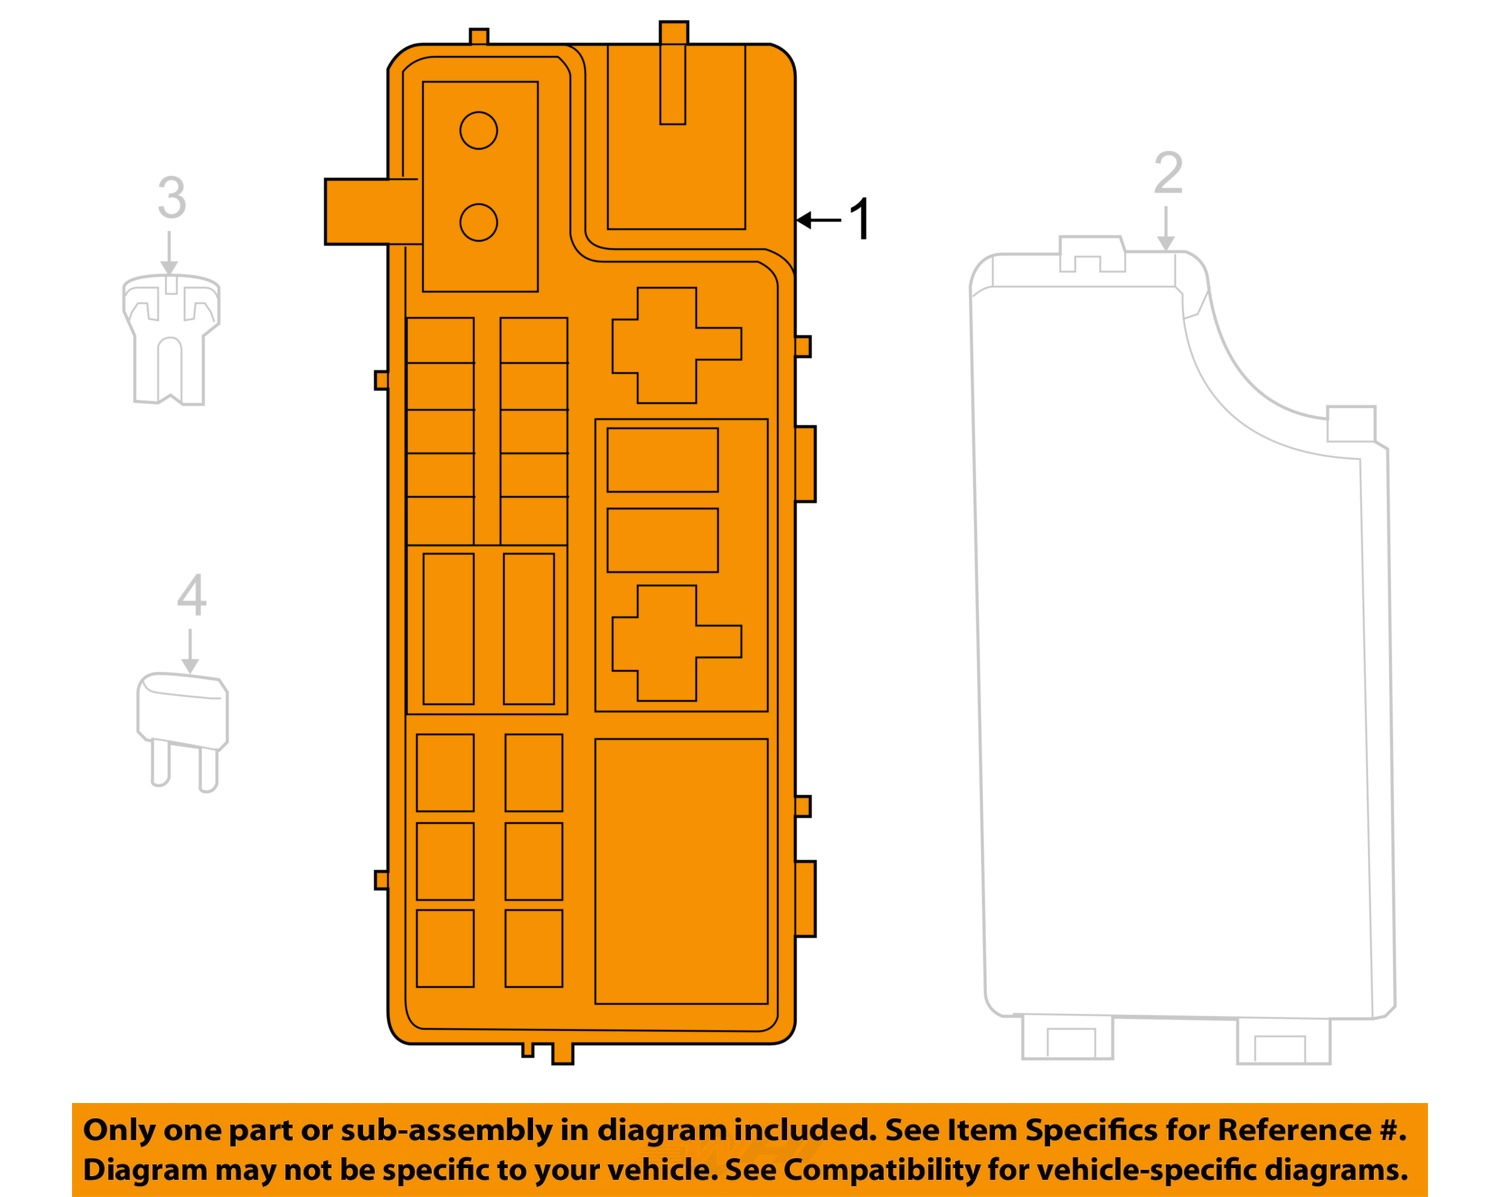 2006 jeep liberty fuse panel diagram jeep chrysler 2007 compass 2 4l l4 fuse box module ...